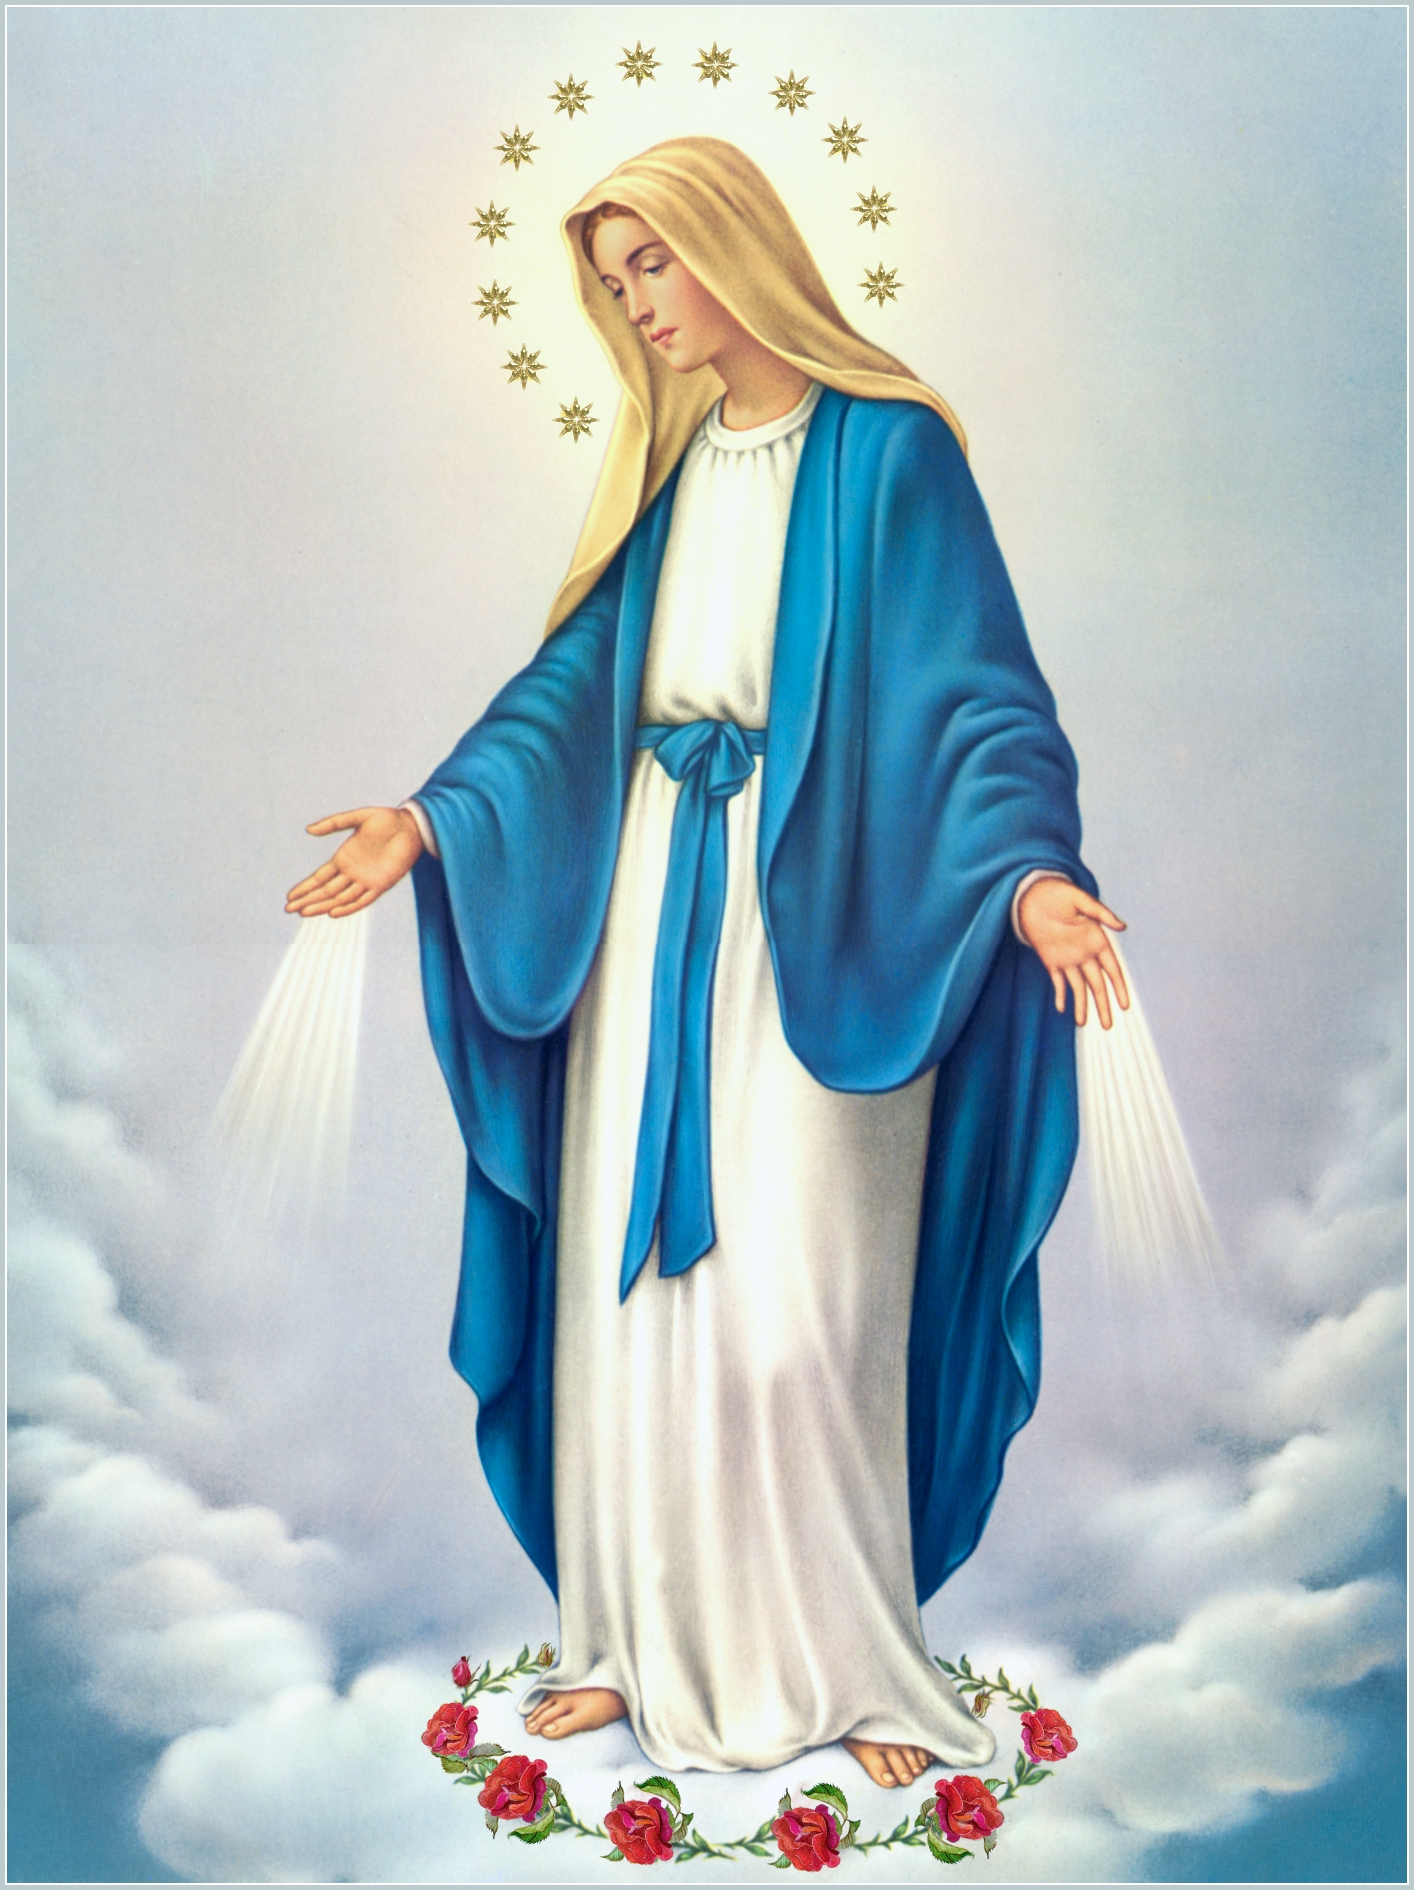 Immaculate Conception Virgin Mary